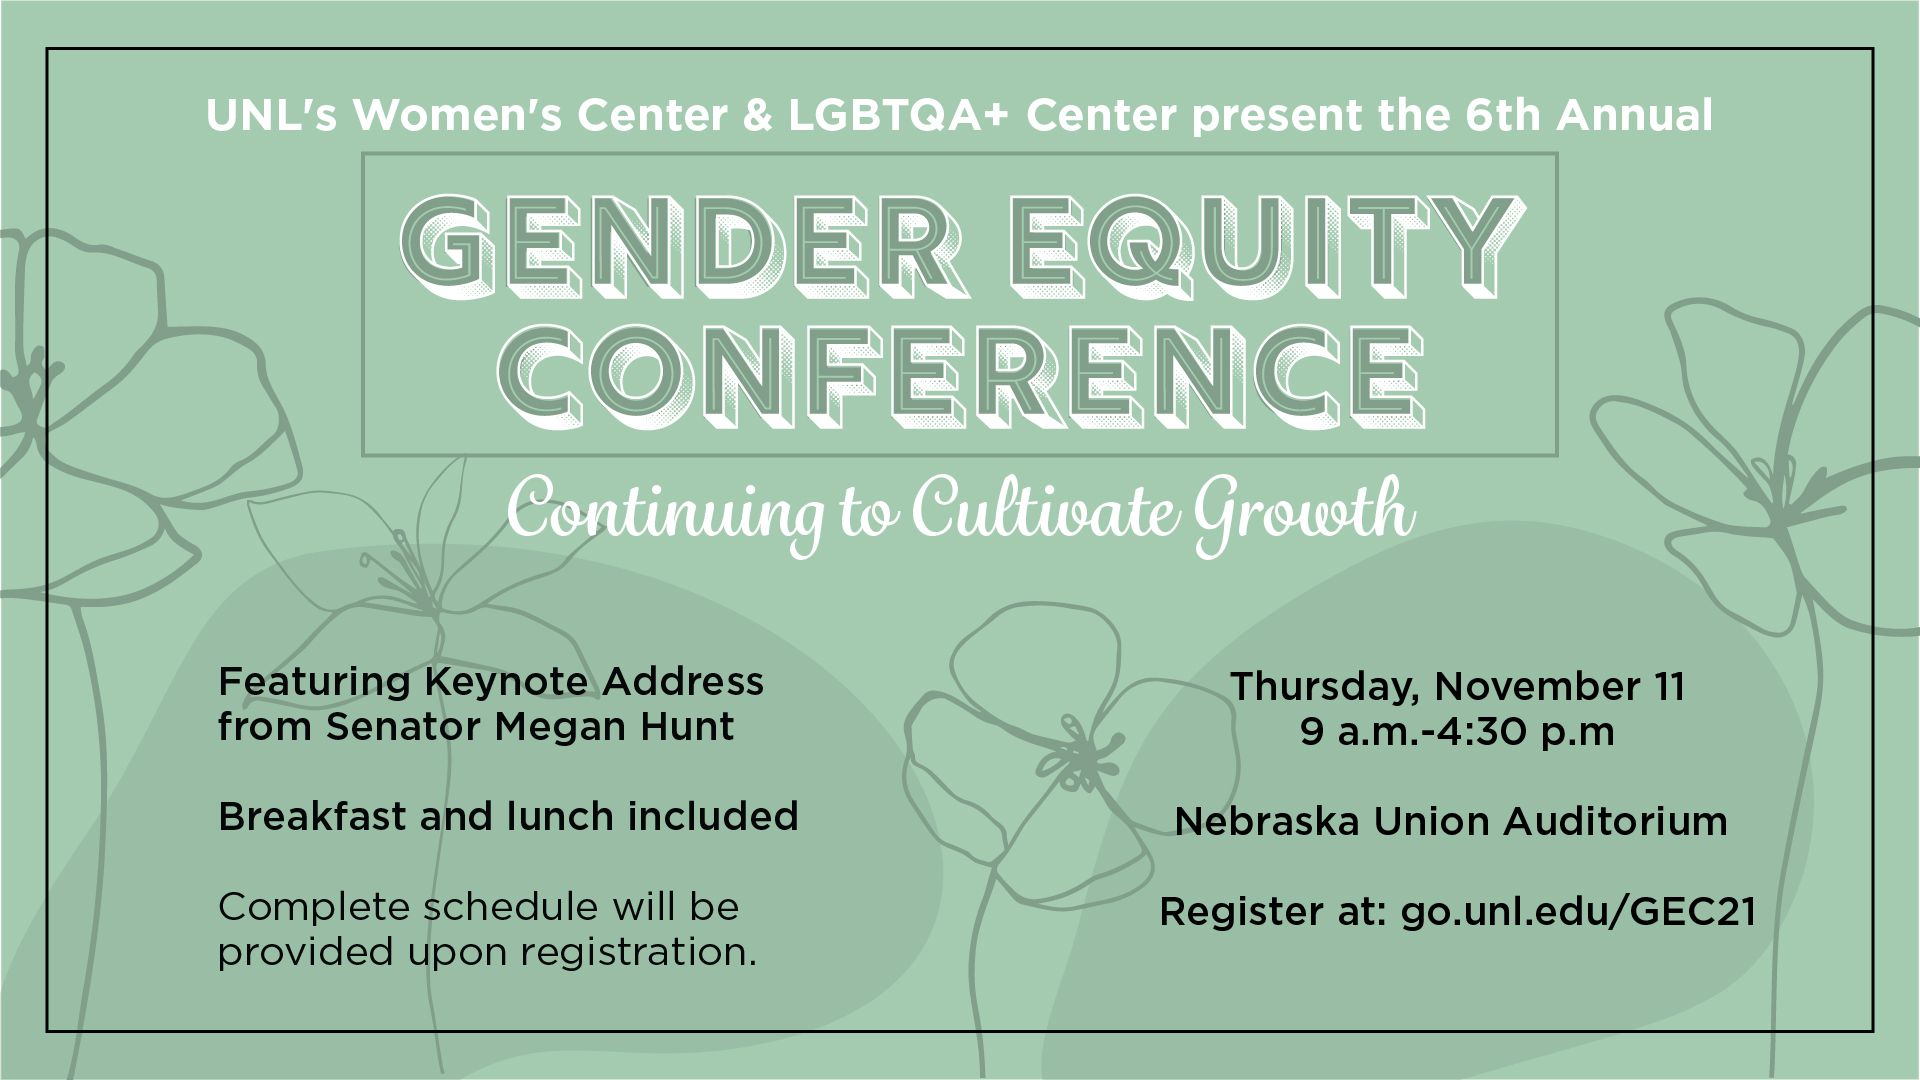 The Women's Center and LGBTQA+ Center of the University of Nebraska-Lincoln are excited to invite campus members to the 2021 Gender Equity Conference on November 11, 2021.